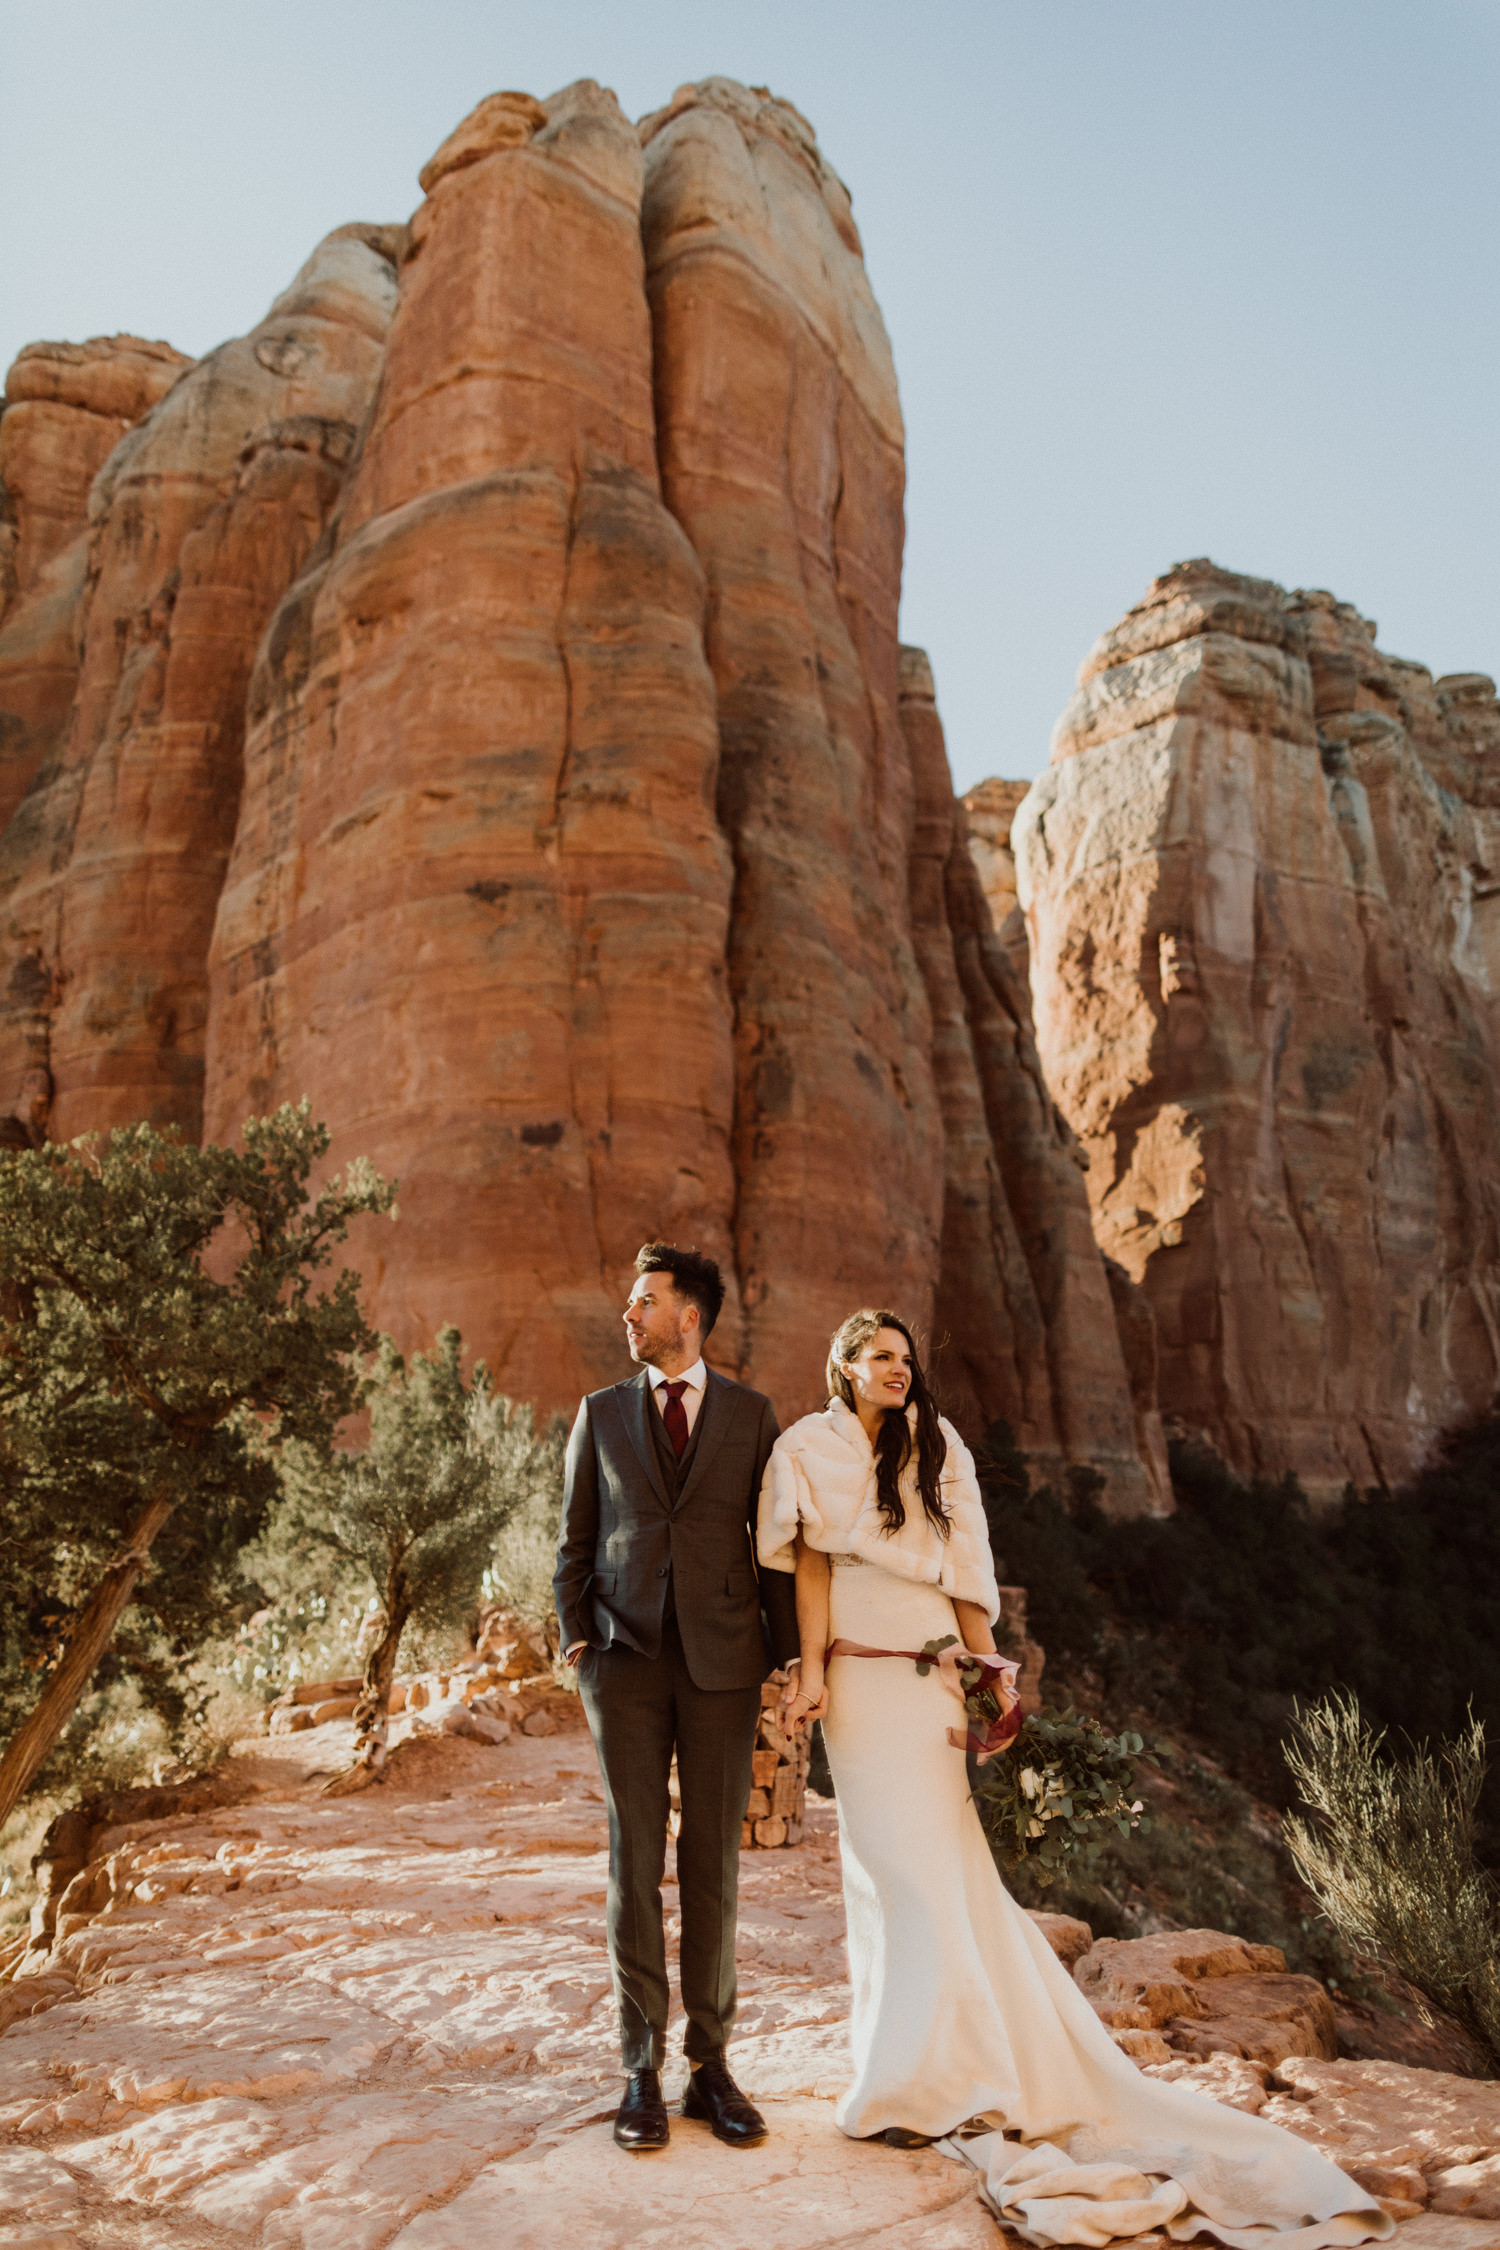 77_intimate-sedona-arizona-wedding-107.jpg